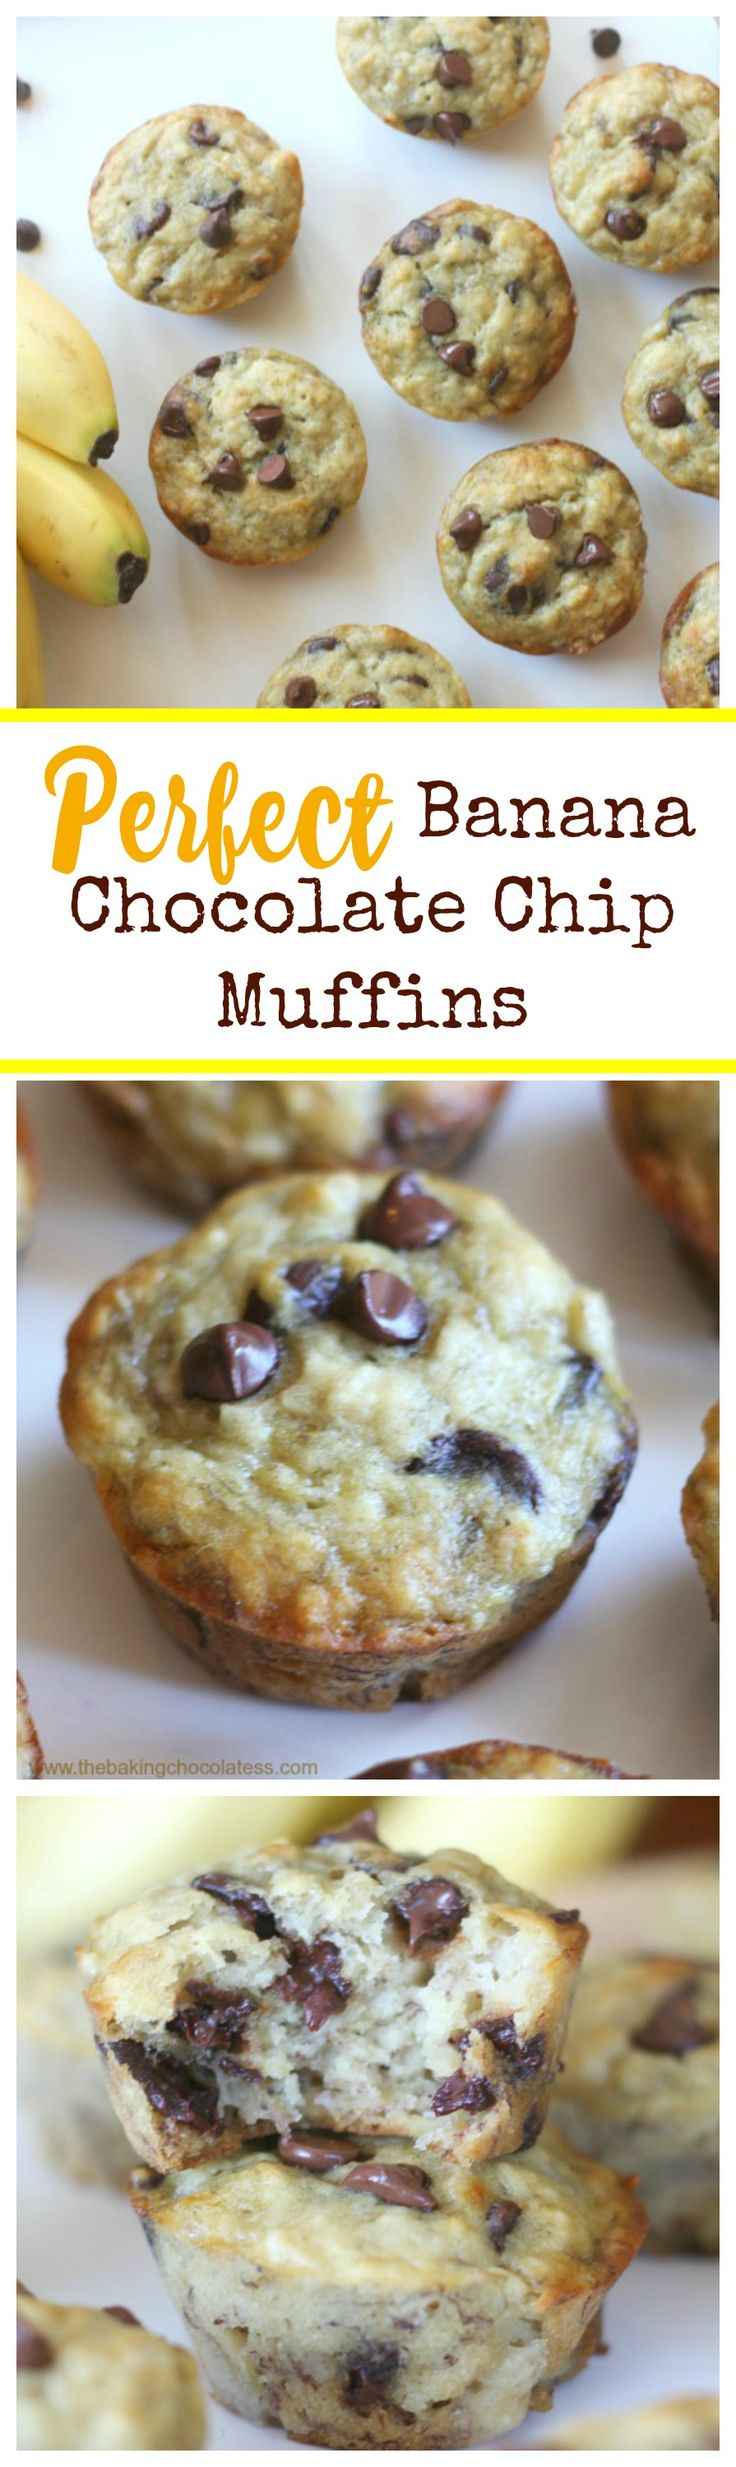 Perfect Banana Chocolate Chip Muffins!  Fluffy & Moist! via @https://www.pinterest.com/BaknChocolaTess/